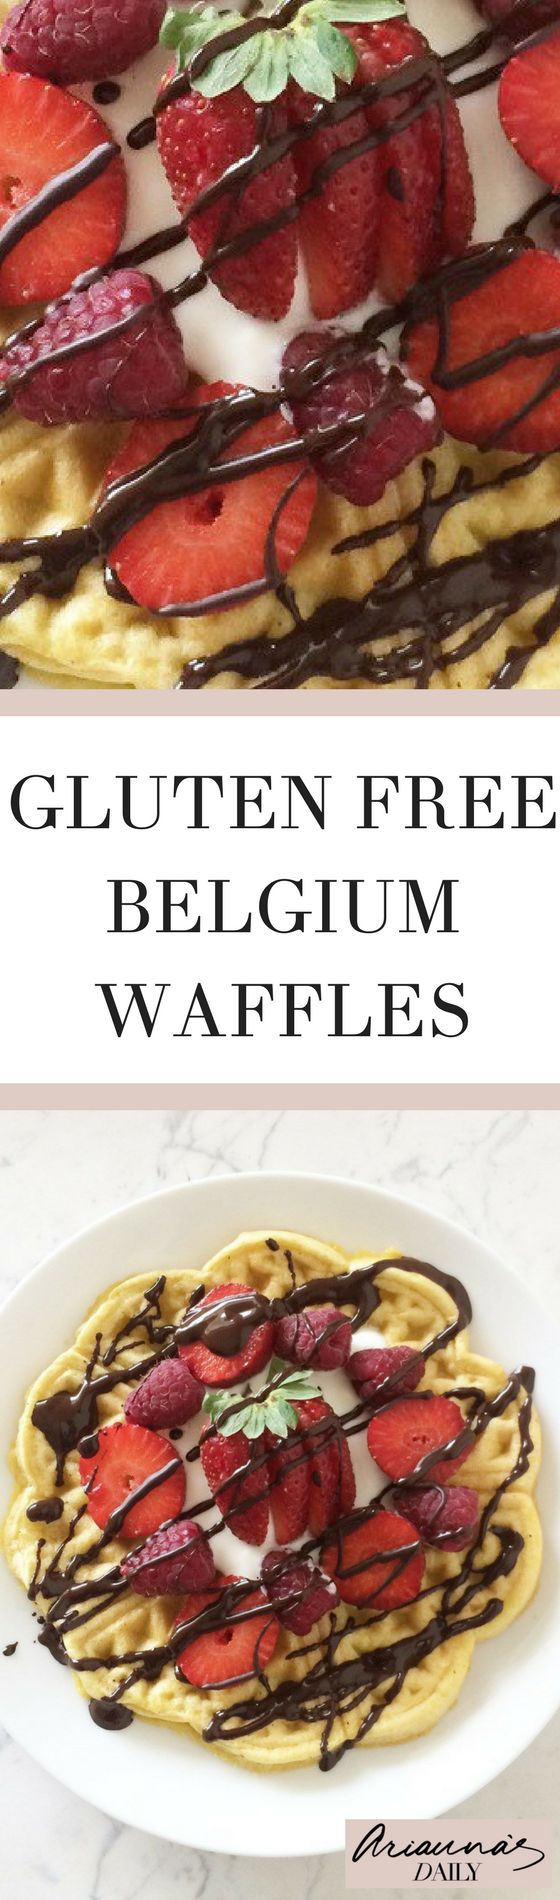 Healthy gluten free belgium waffles, which are also sugar free and dairy free. These couldn't be more delicious so click through to check out the recipe! #ariannasdaily #wafflesrecipe #healthywaffles